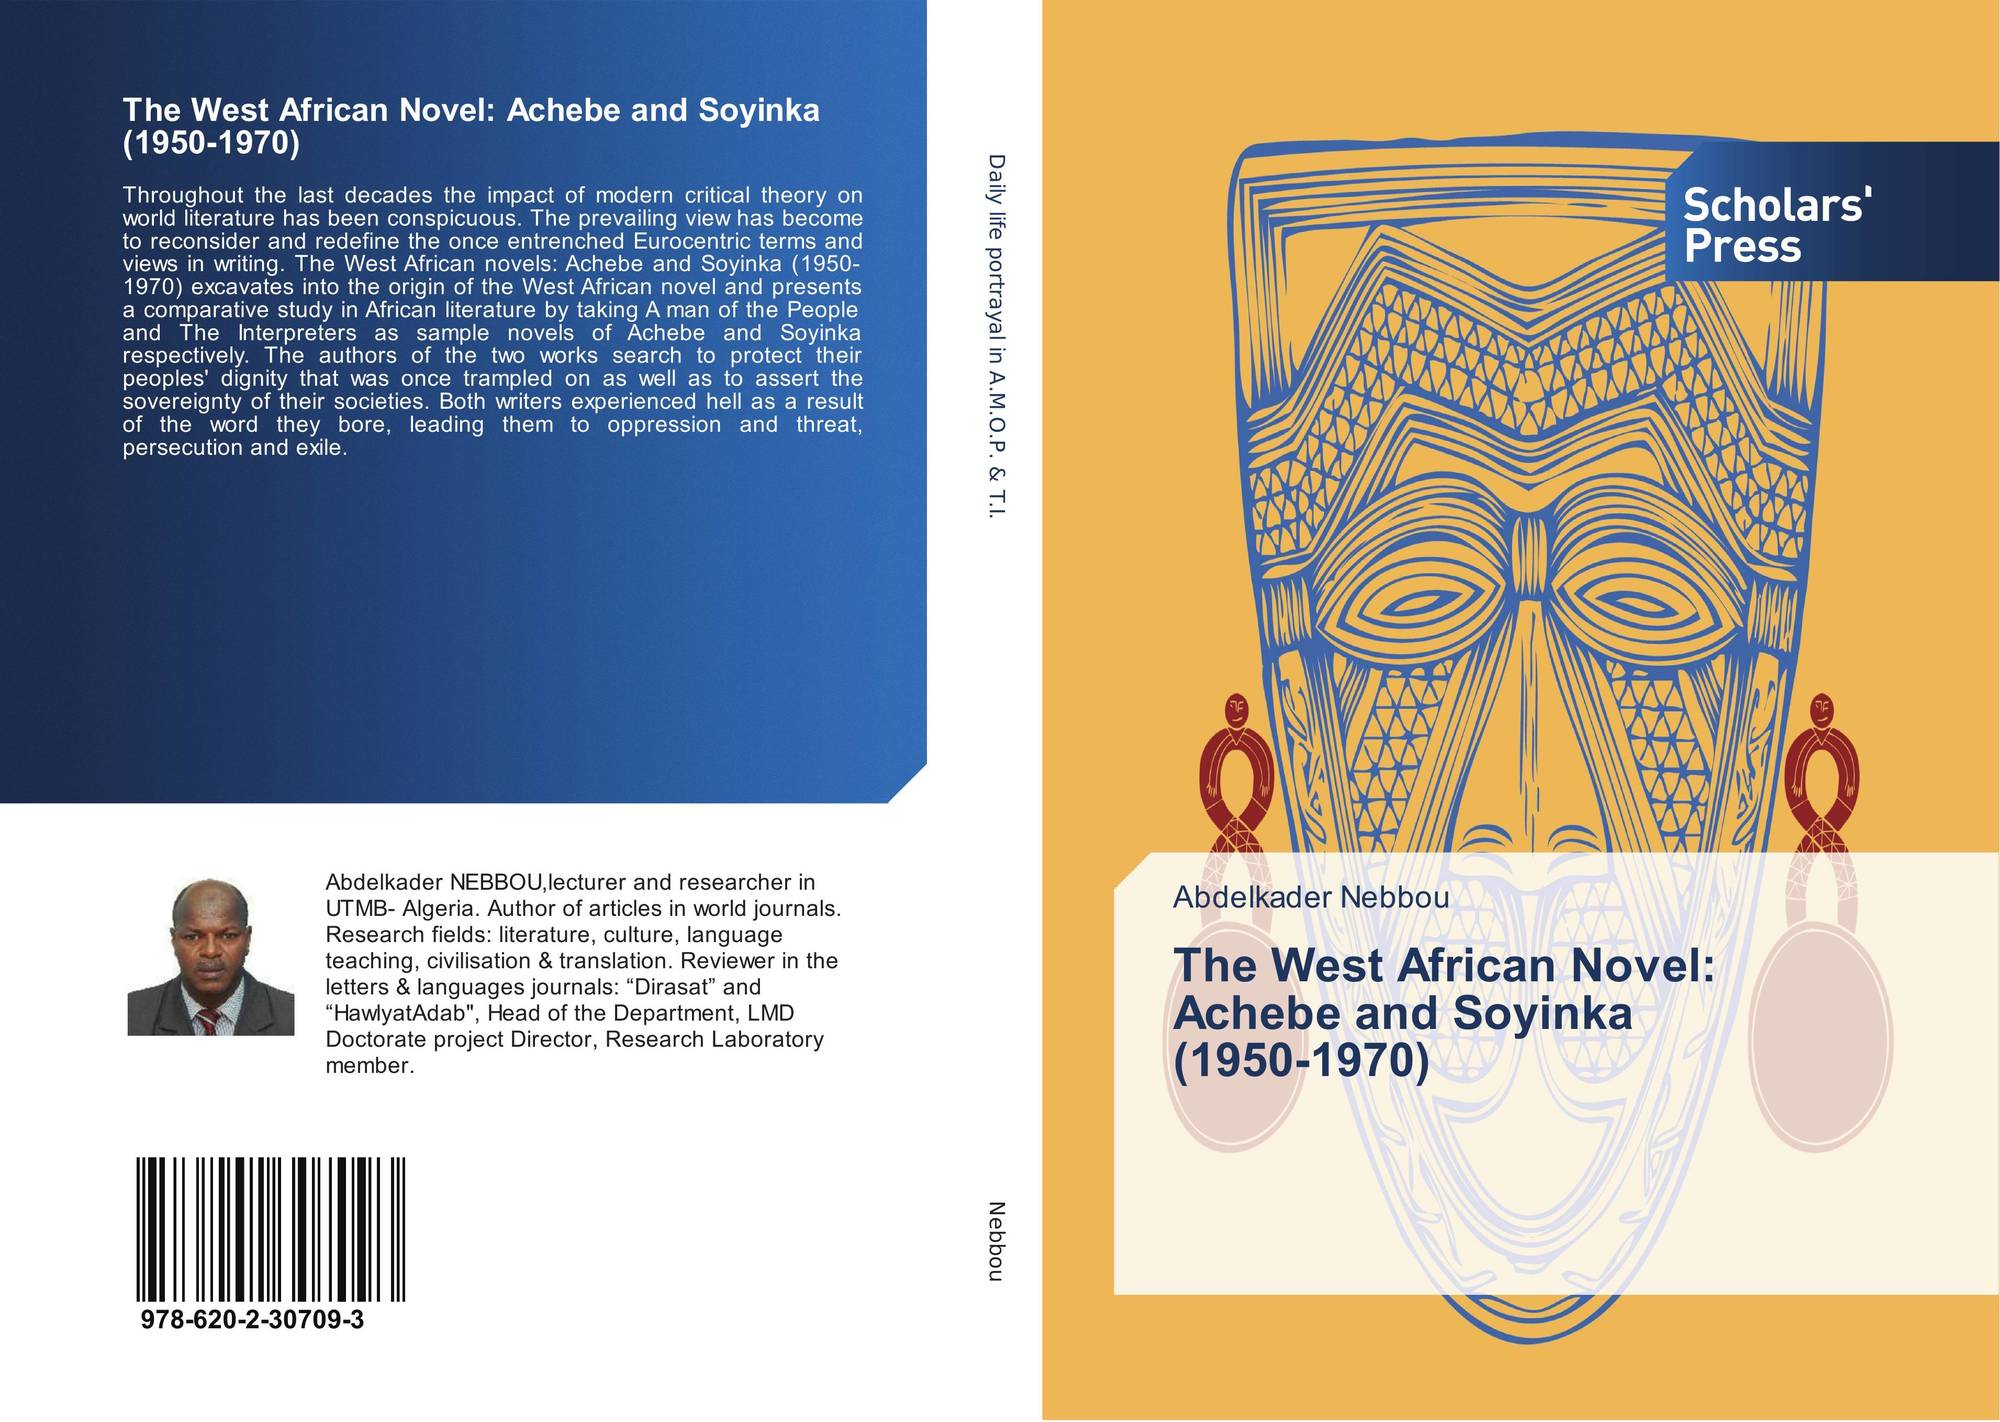 The West African Novel: Achebe and Soyinka (1950-1970), 978